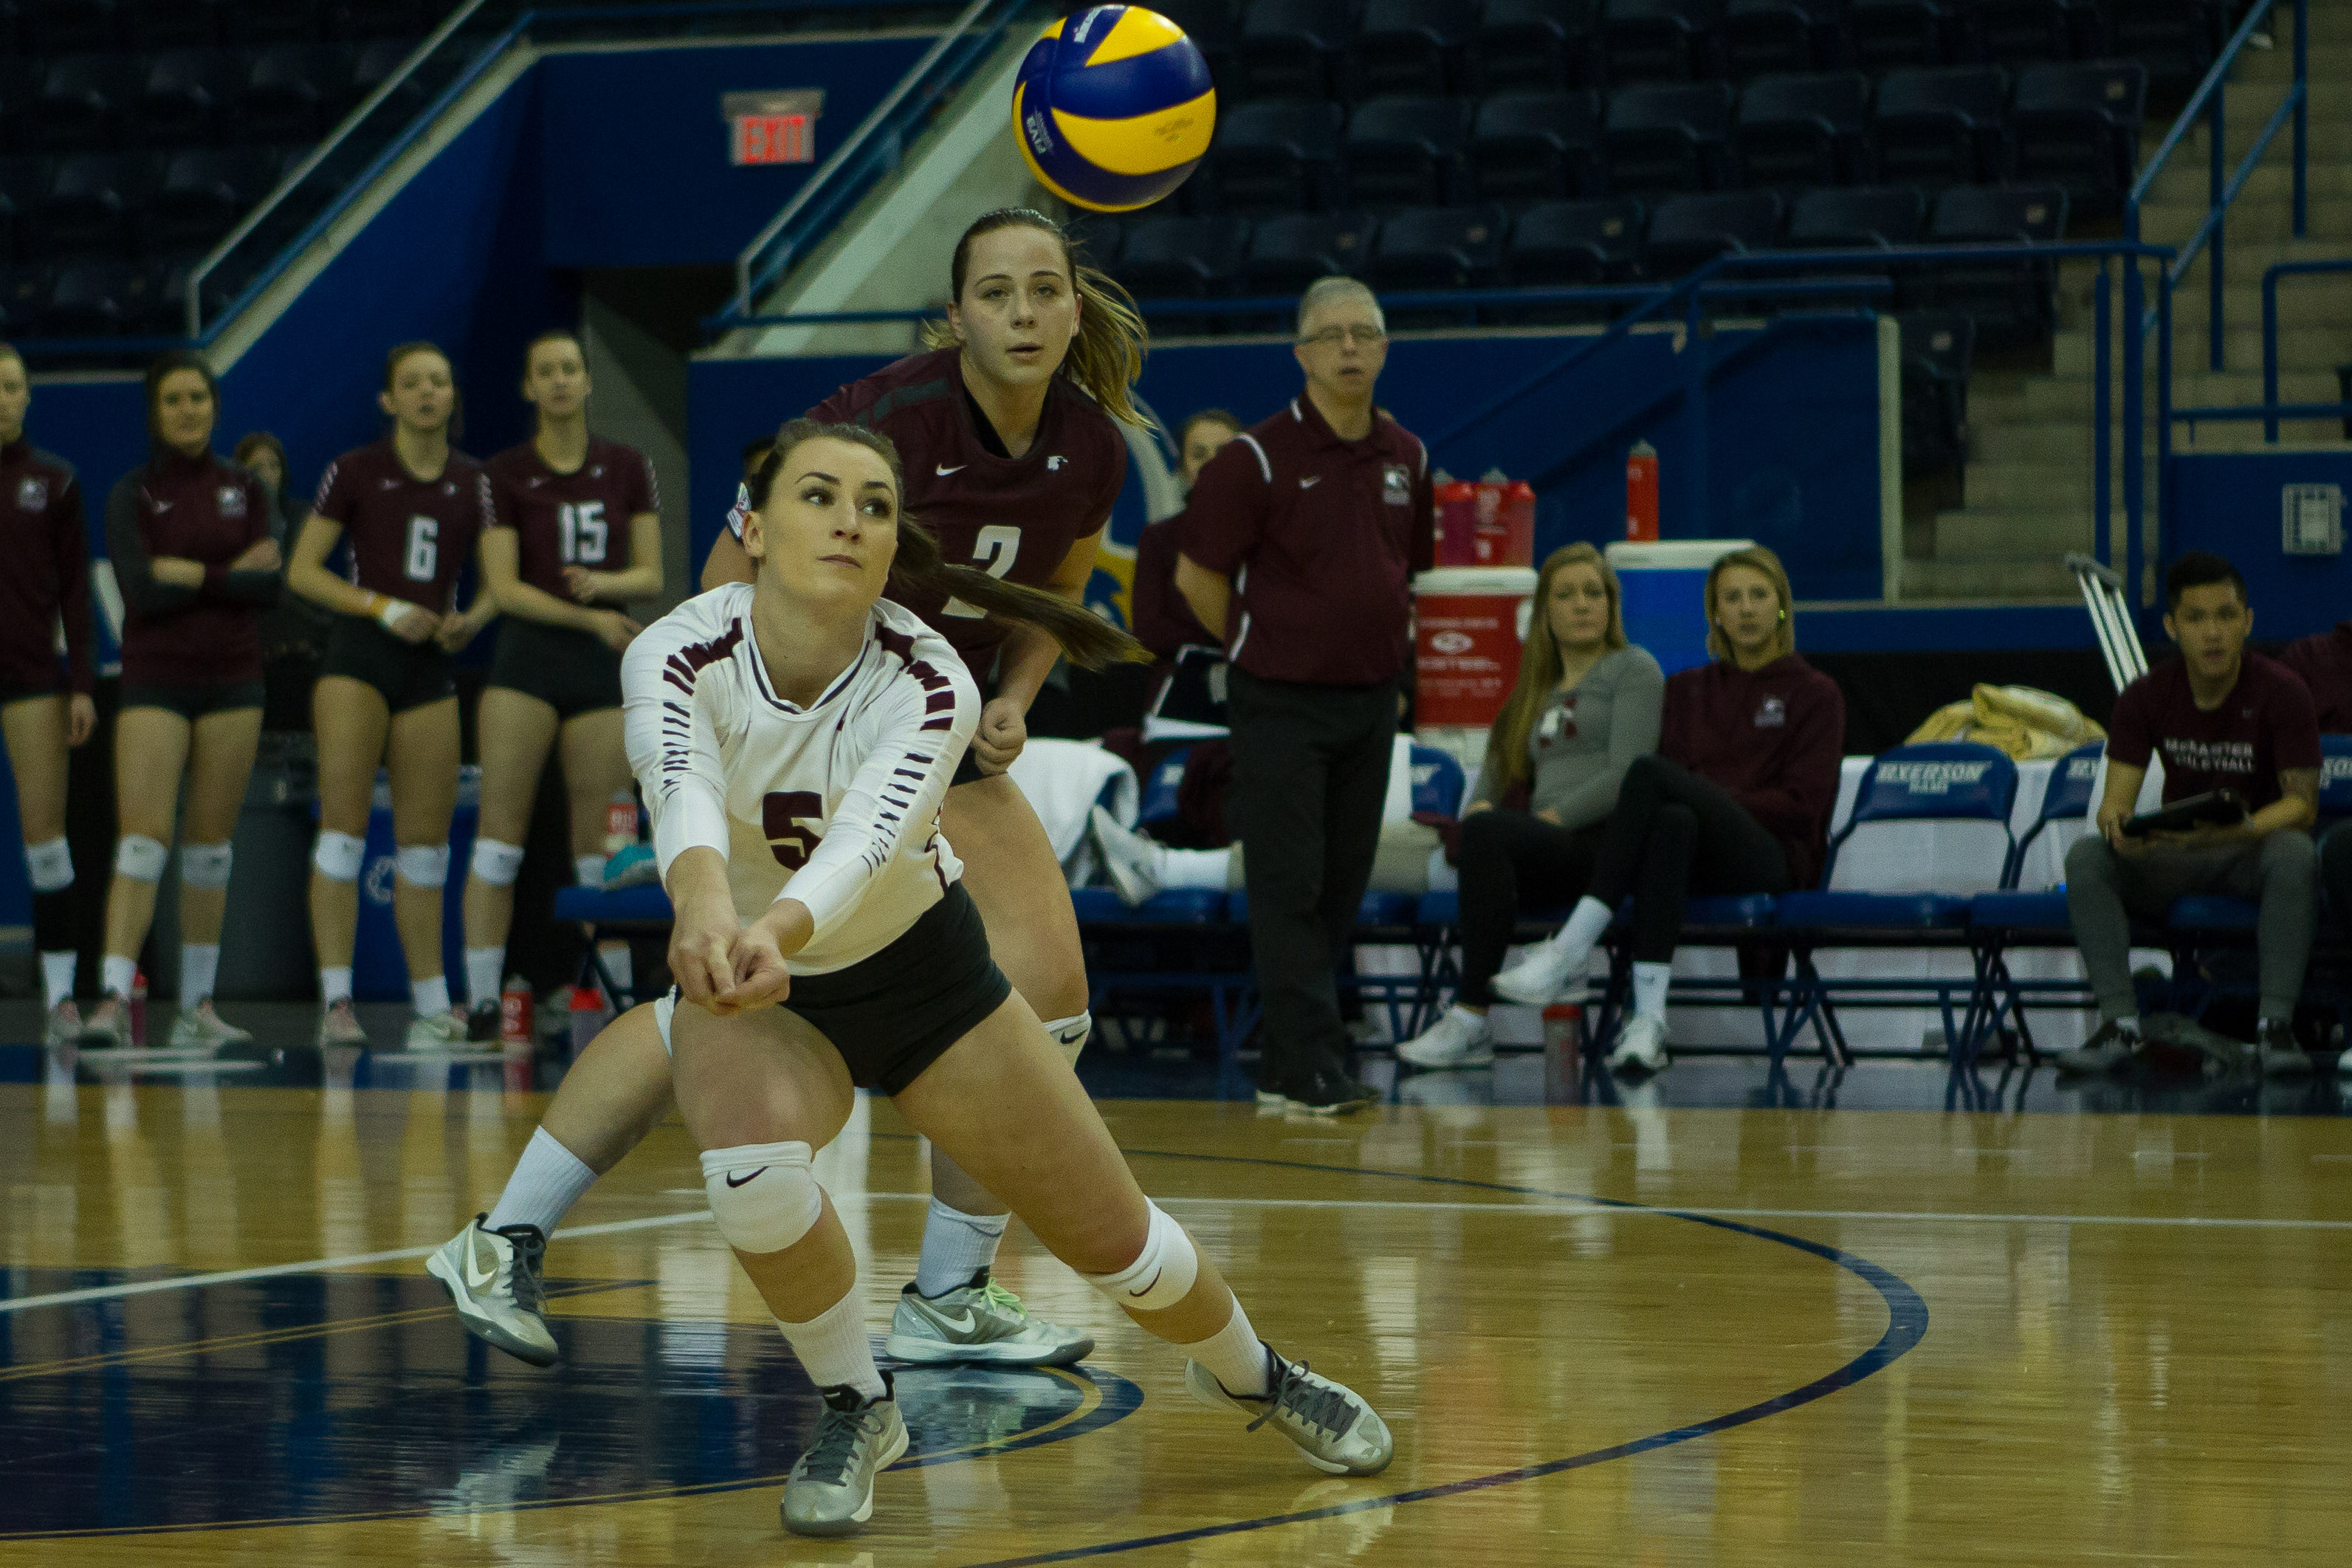 Marauders fall short at nationals Coming off an OUA final victory, the McMaster women's volleyball team was unable to carry that momentum into the U Sports national championship